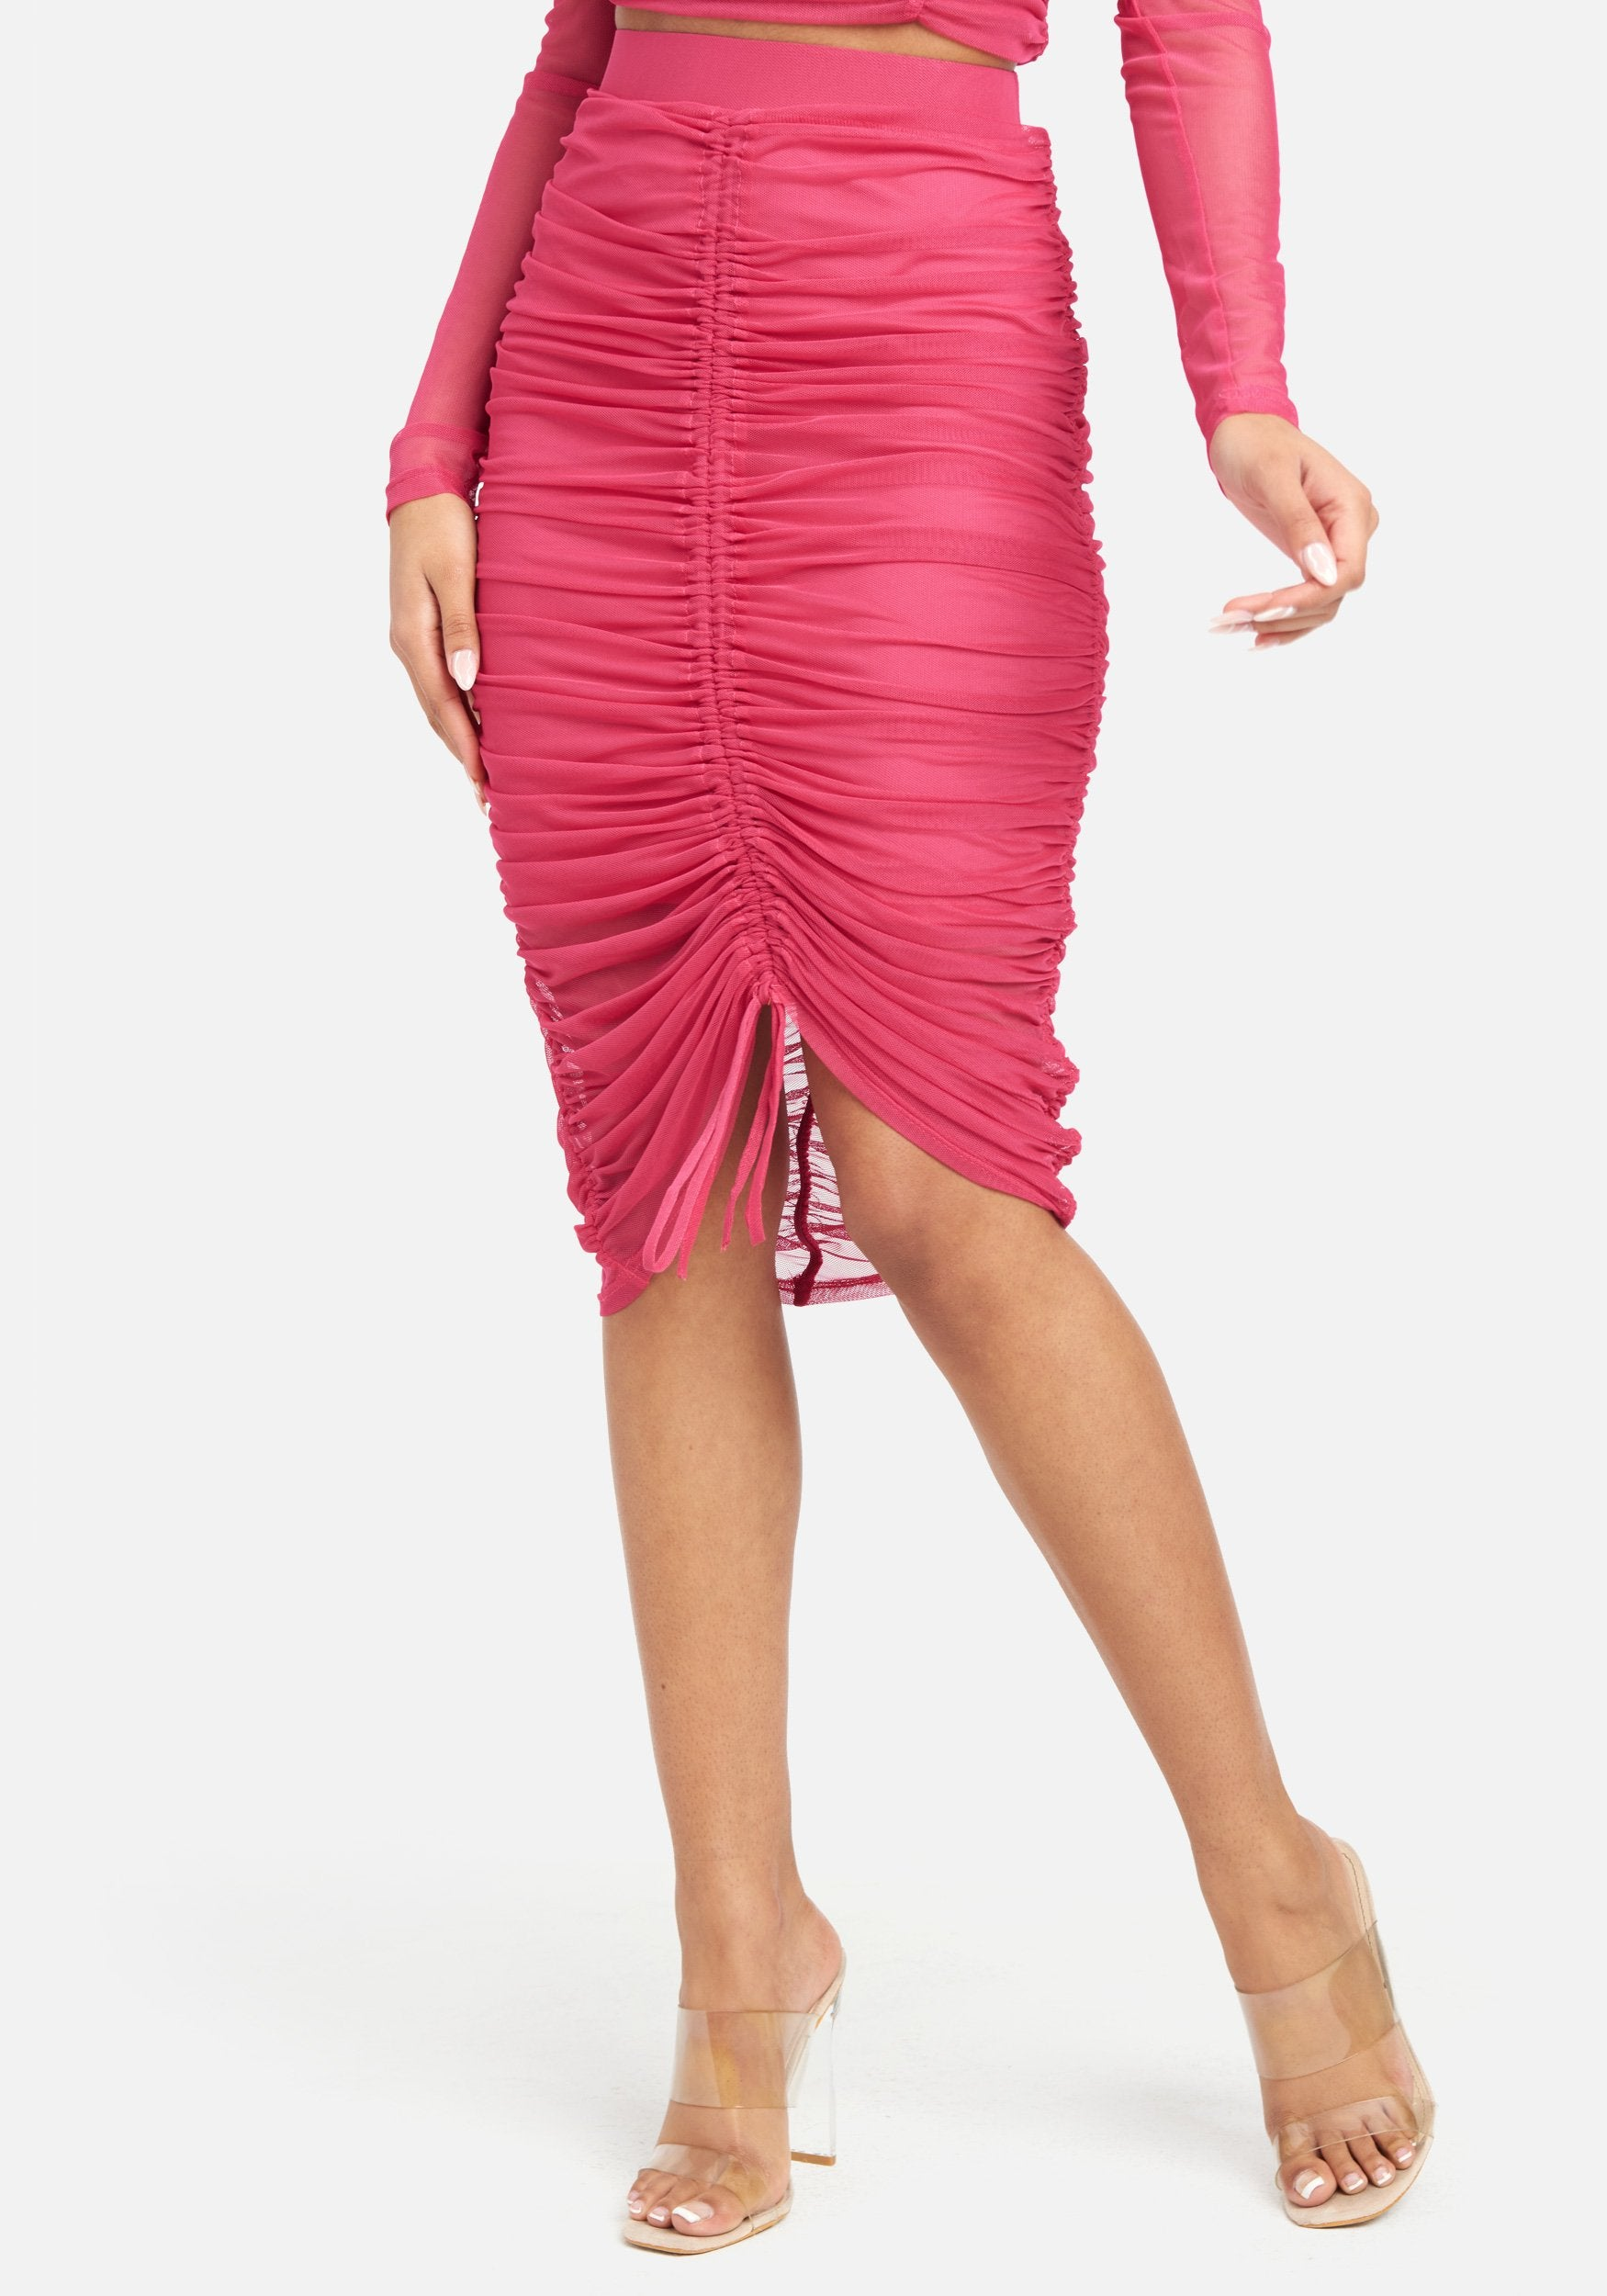 Bebe Women's 4 Way Stretch Mesh Ruched Skirt, Size XS in Cerise Spandex